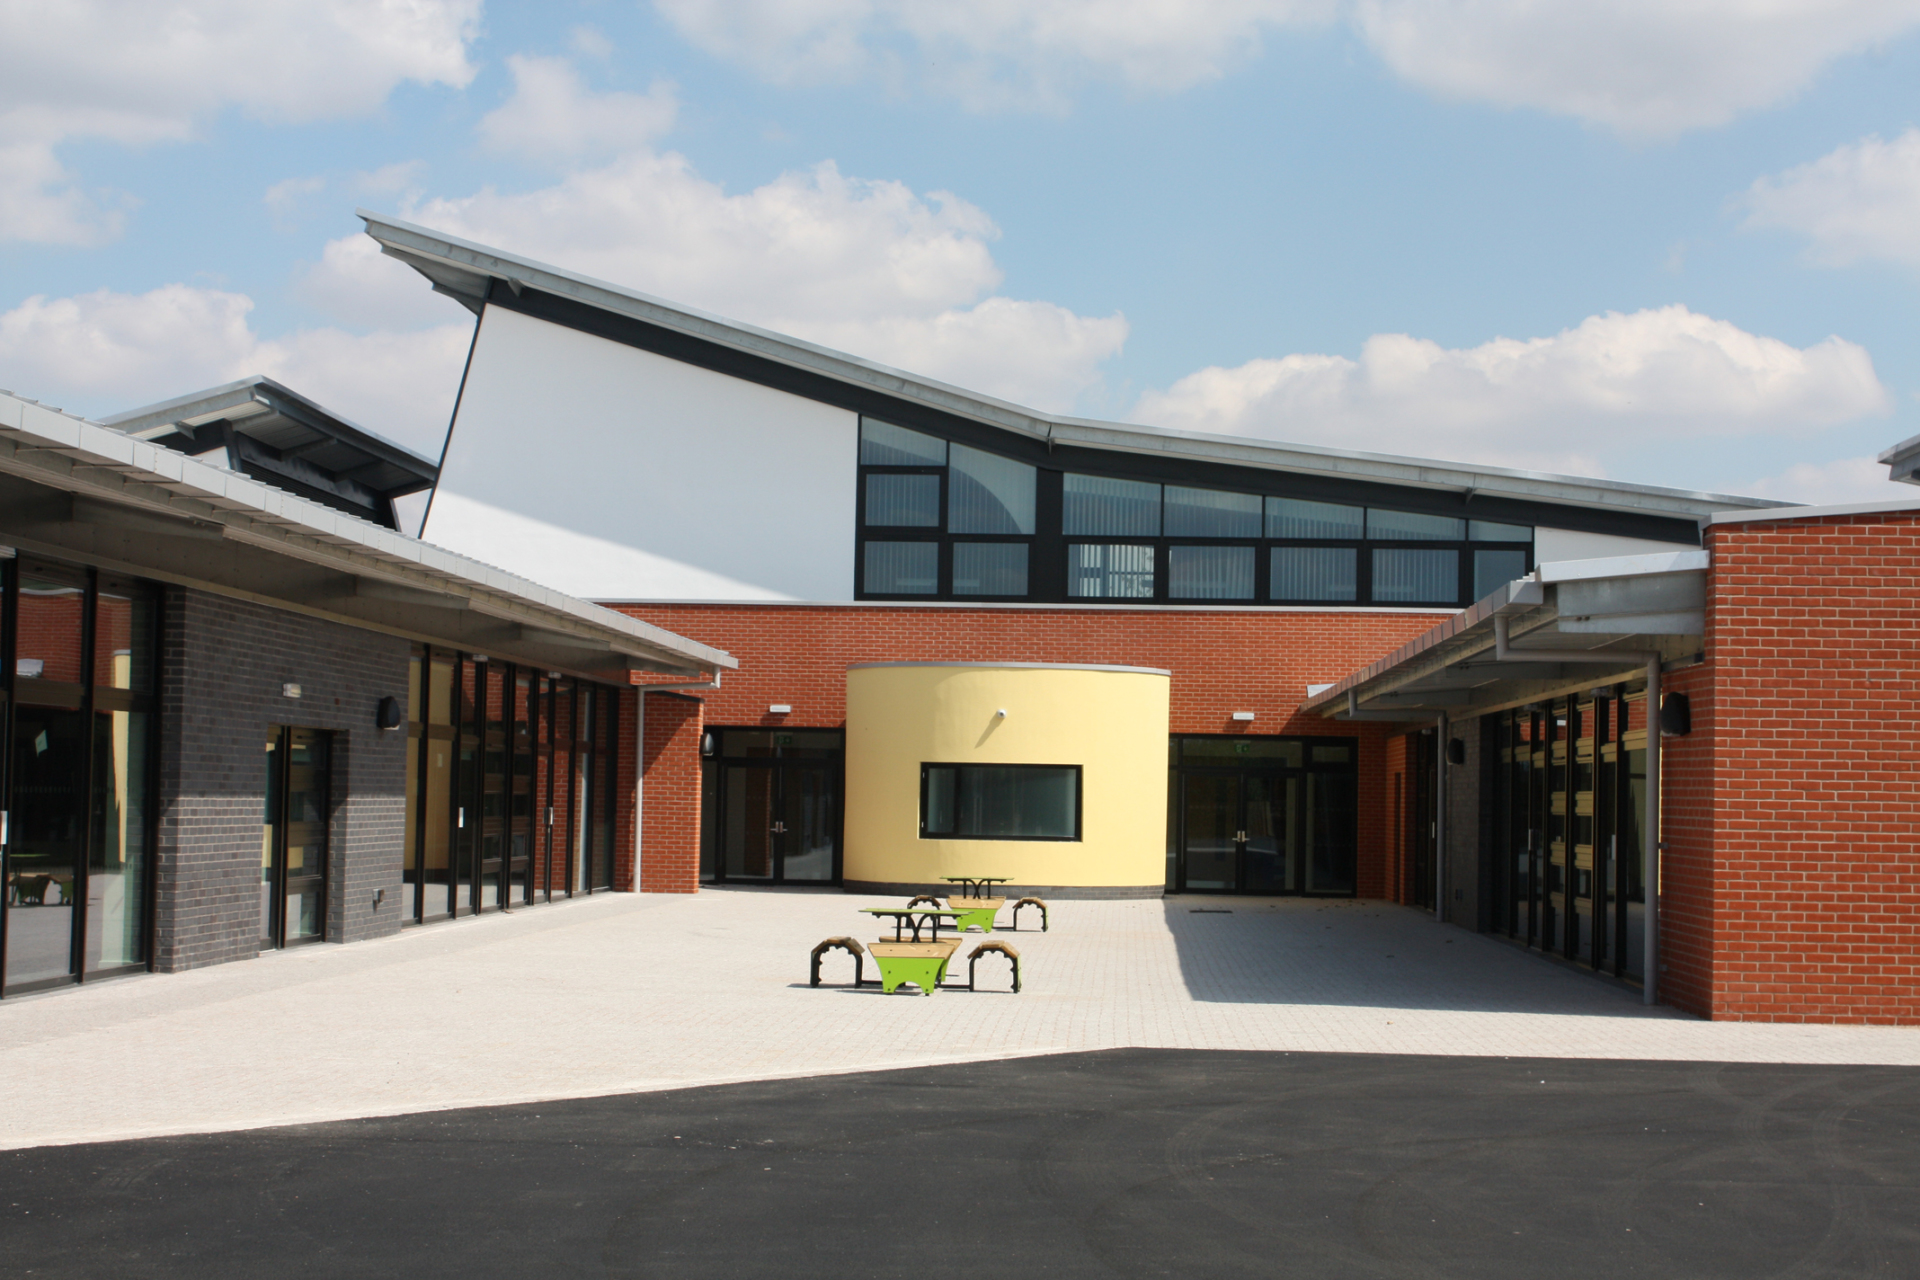 Primary School Design, West Midlands